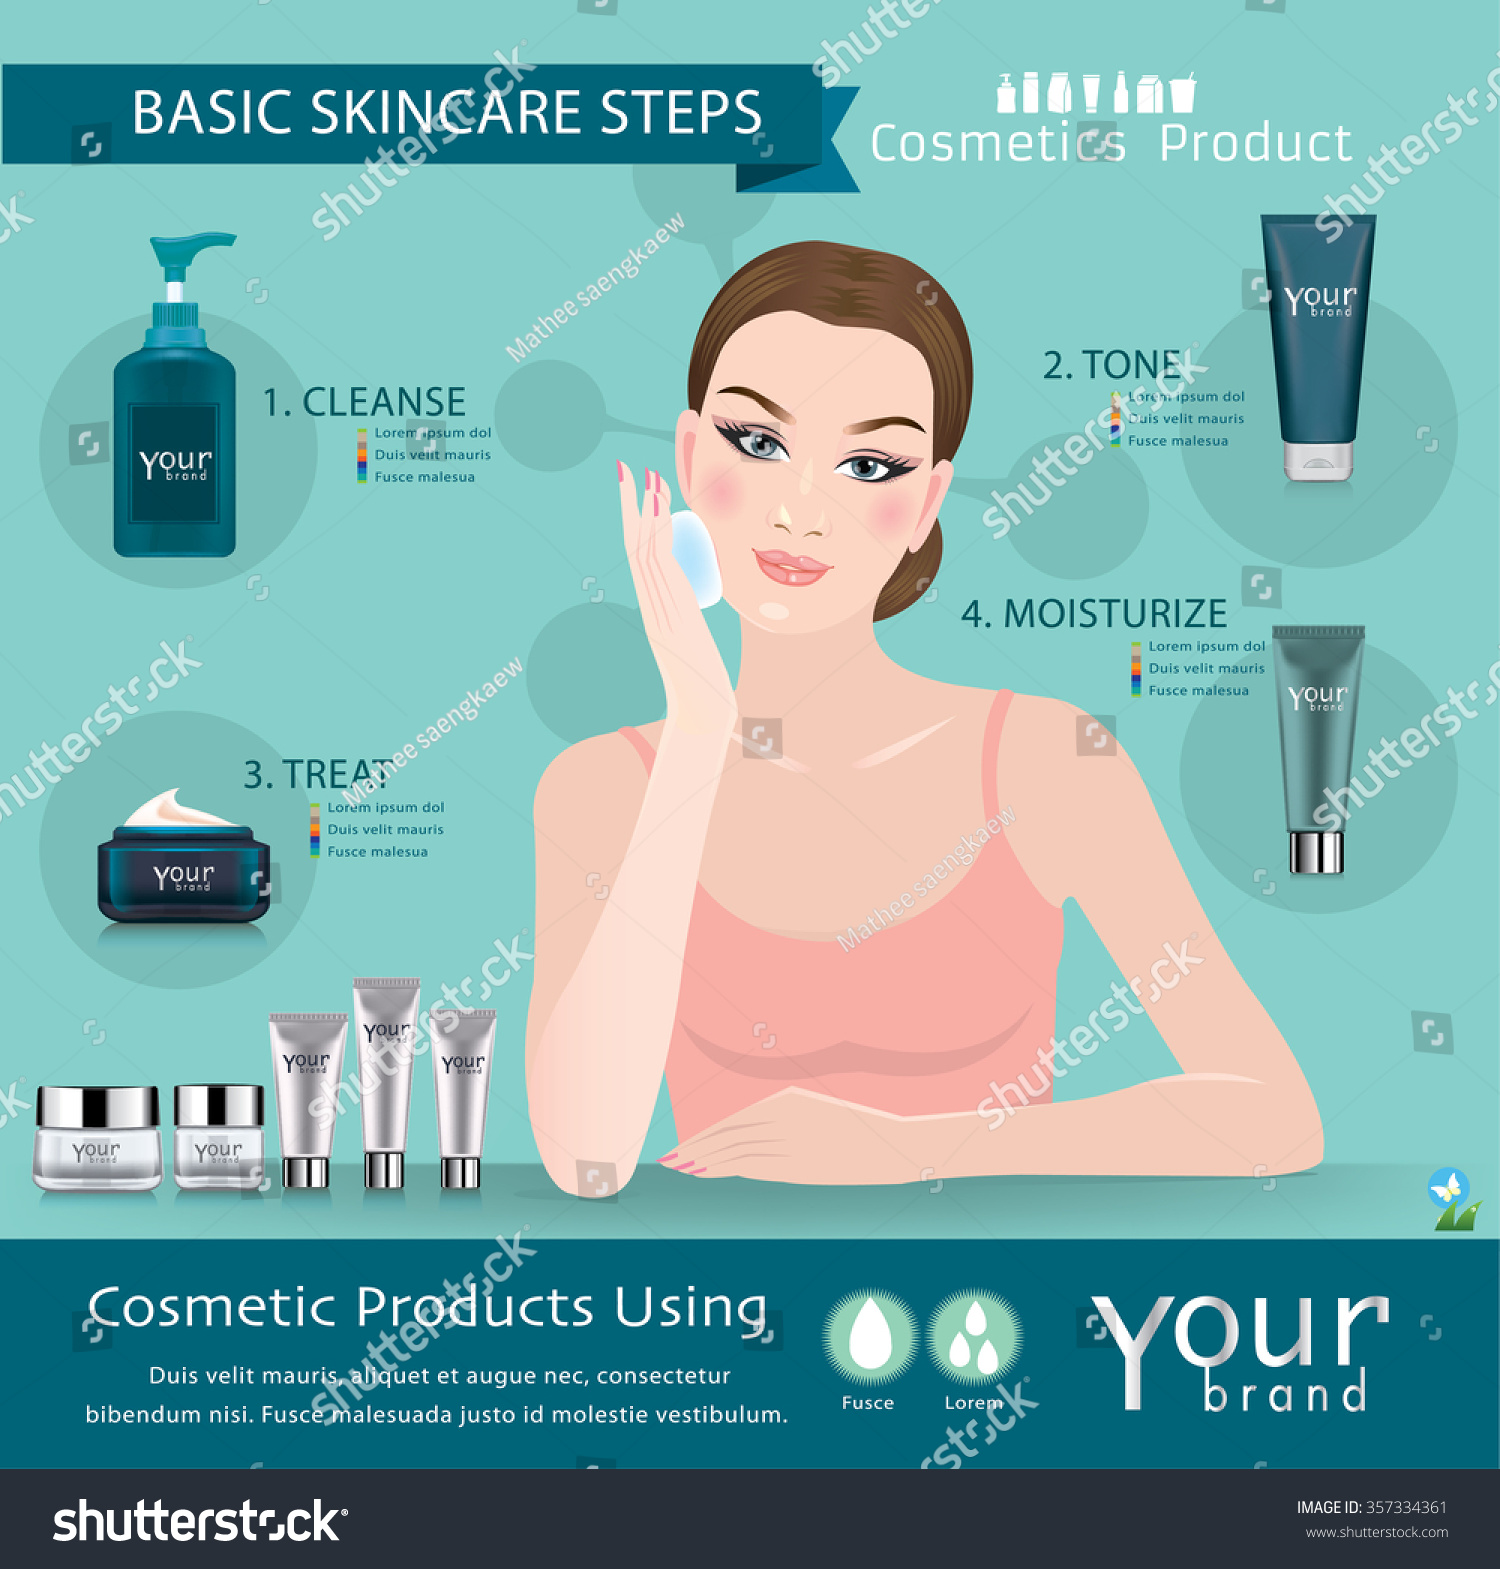 Skin Care Infographic: Skincare Products Steps Infographic Stock Vector 357334361